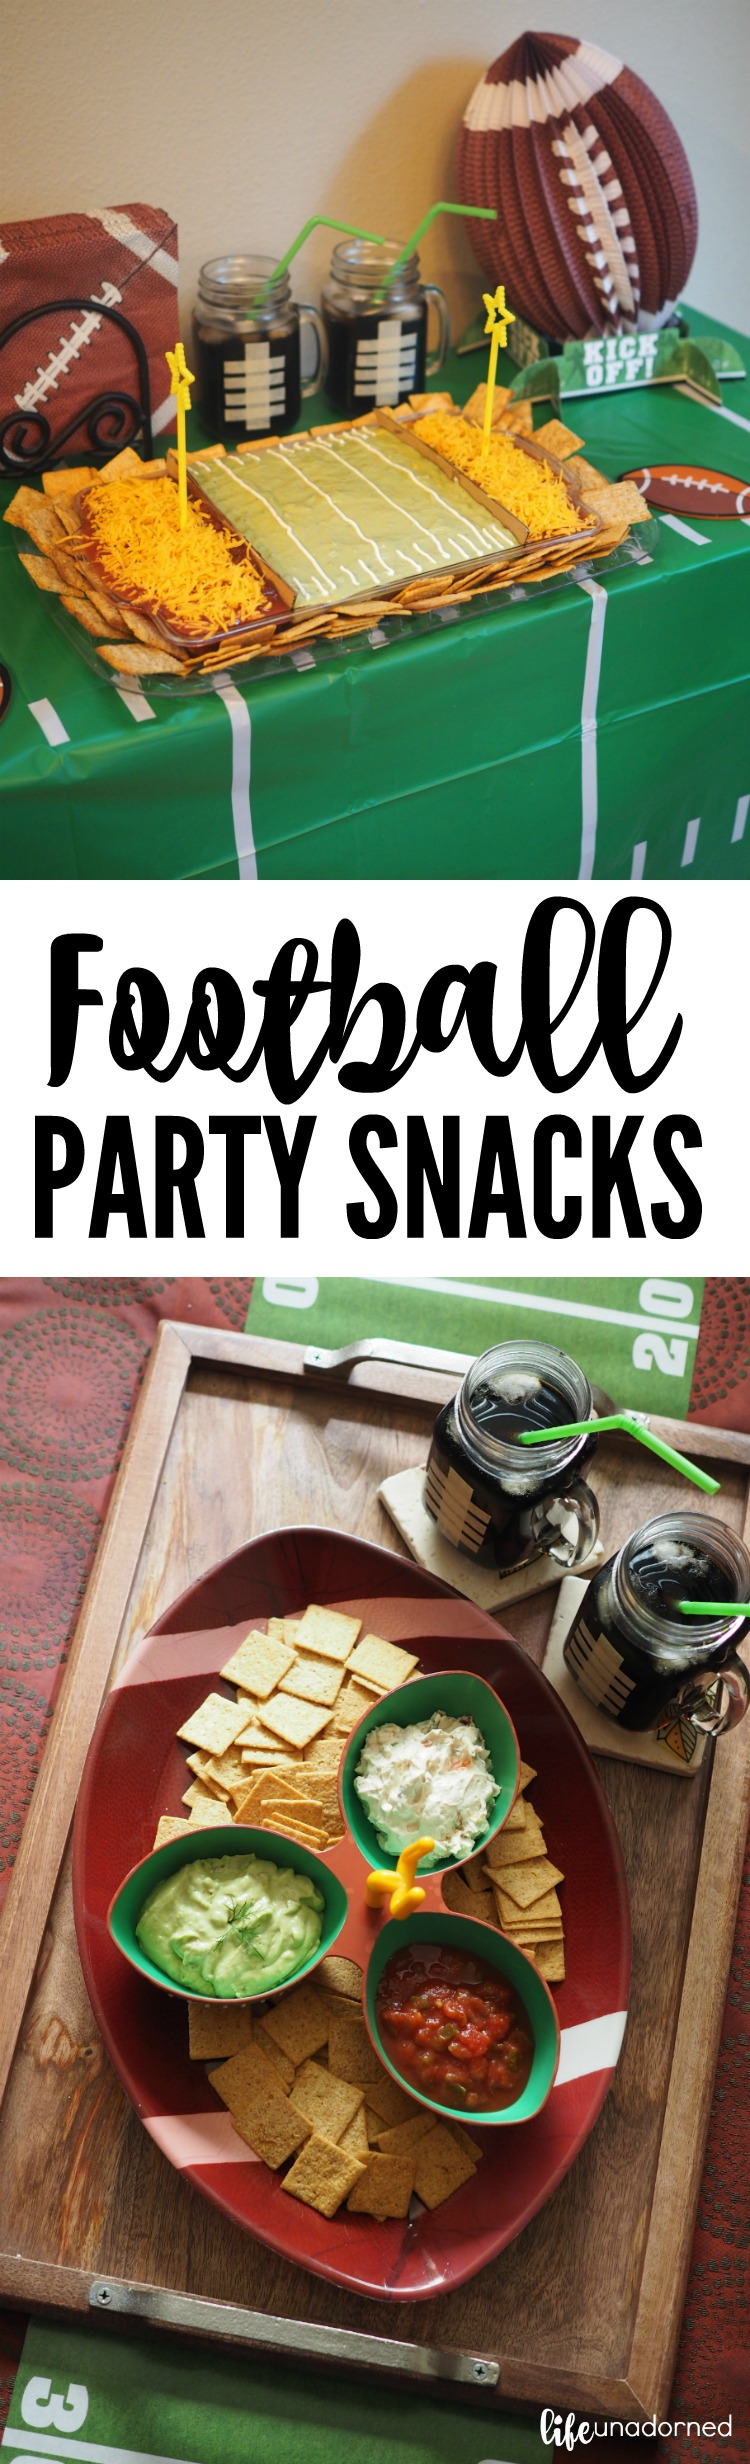 football-party-snacks-and-ideas